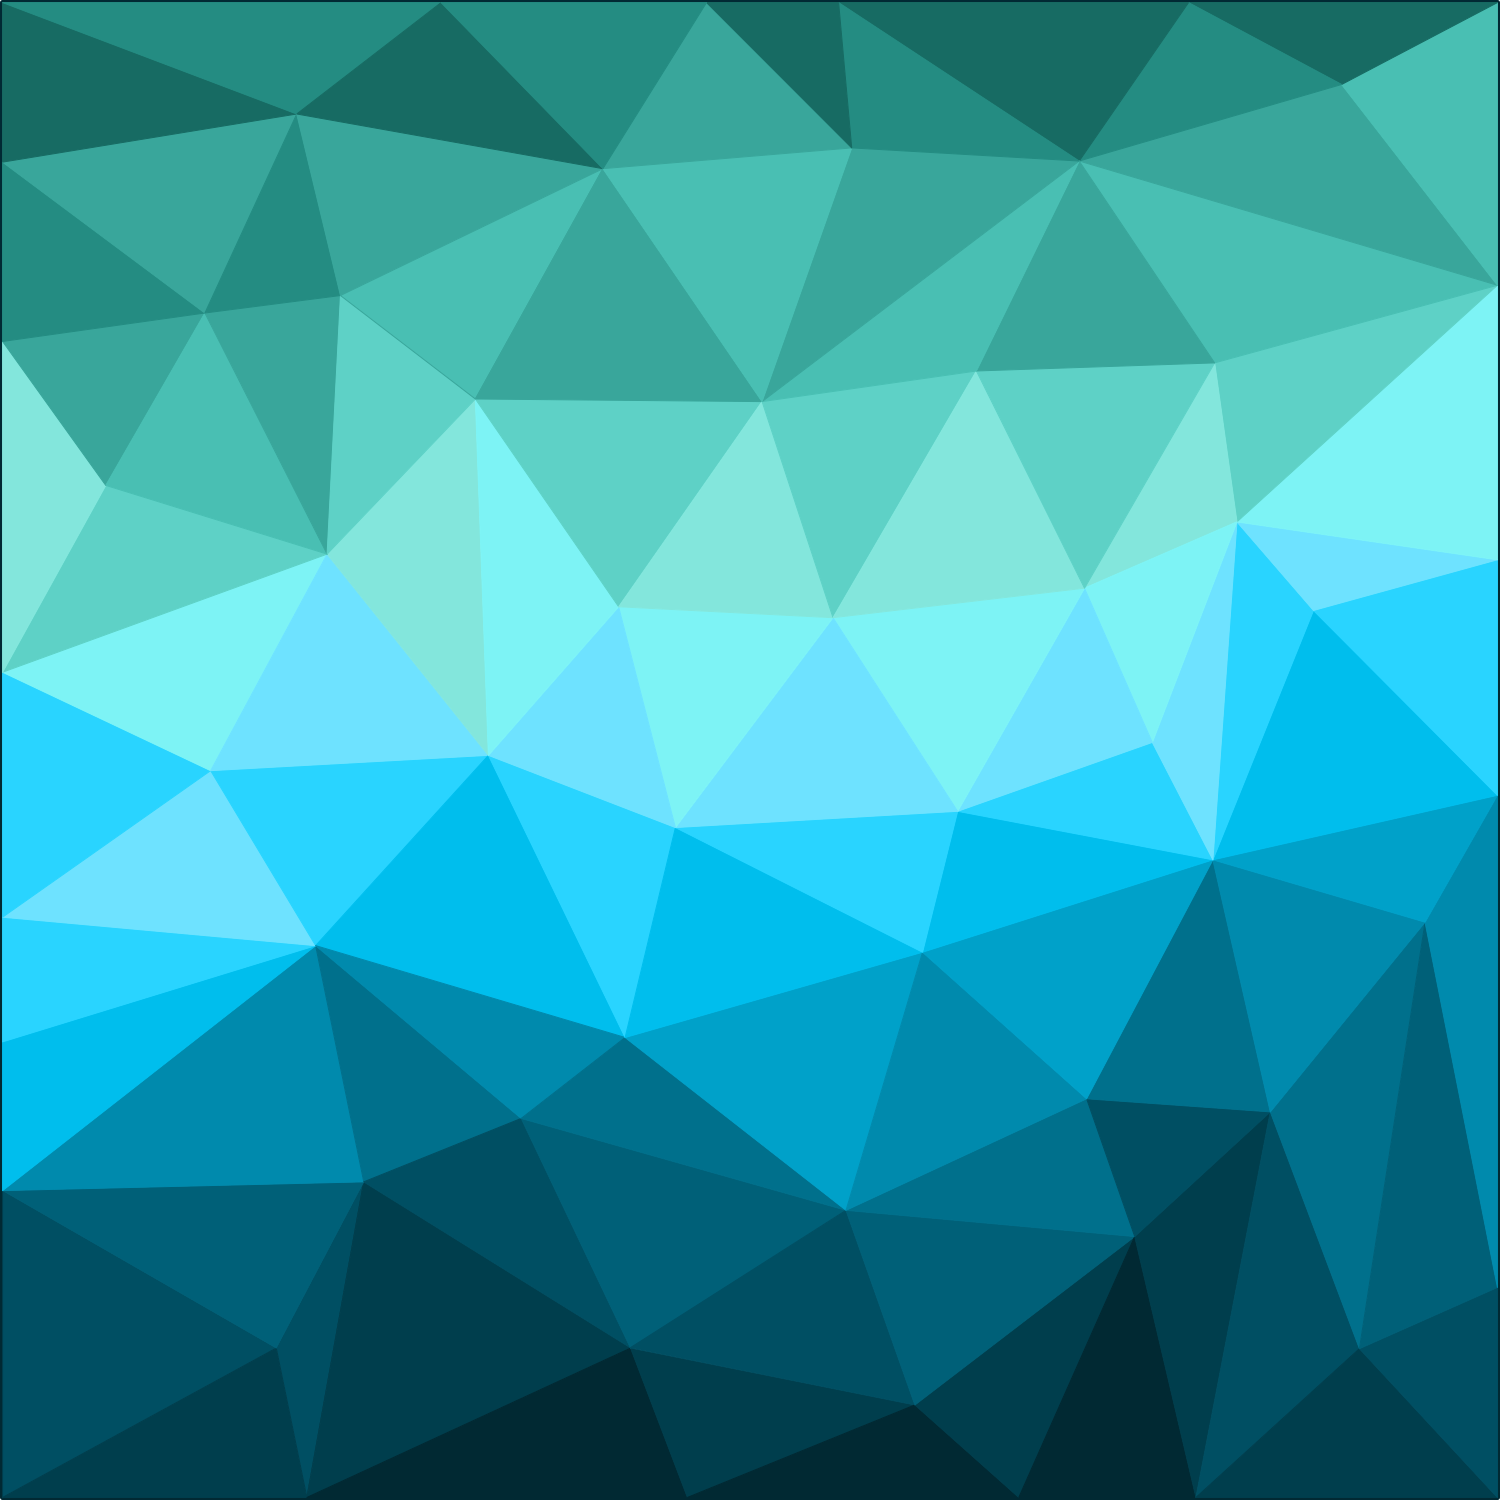 Abstract Blue Green Vector Background Free vector in Encapsulated ...